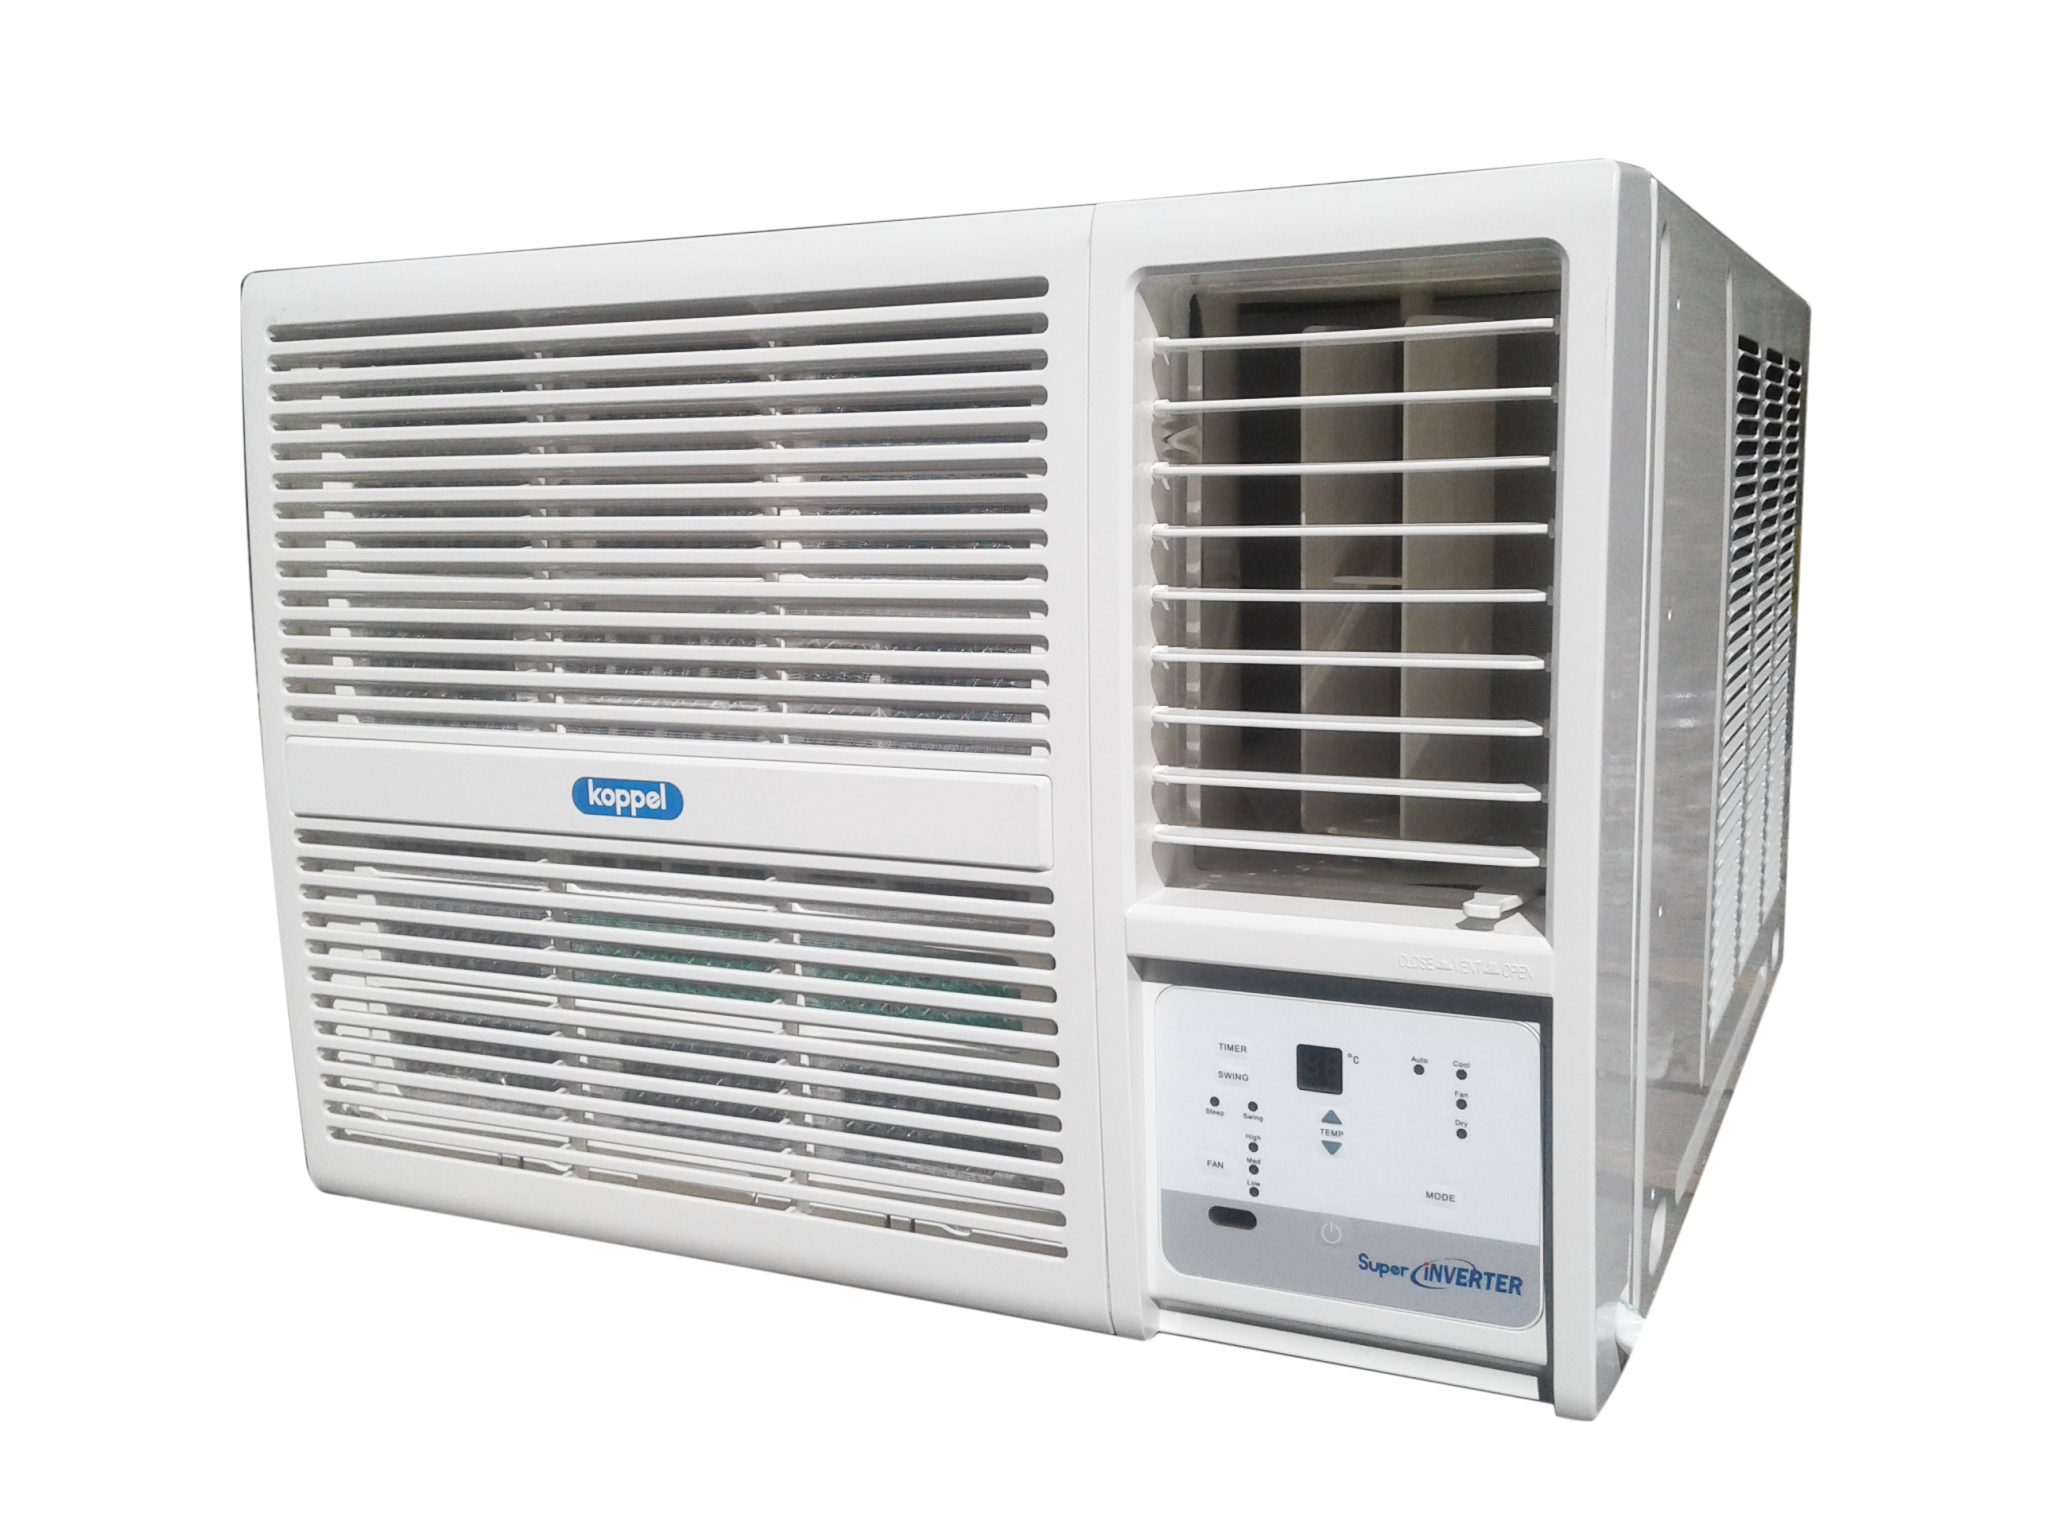 #4D5F67 Window Type Inverter Koppel Best 4823 Inverter Window Ac photos with 2048x1536 px on helpvideos.info - Air Conditioners, Air Coolers and more